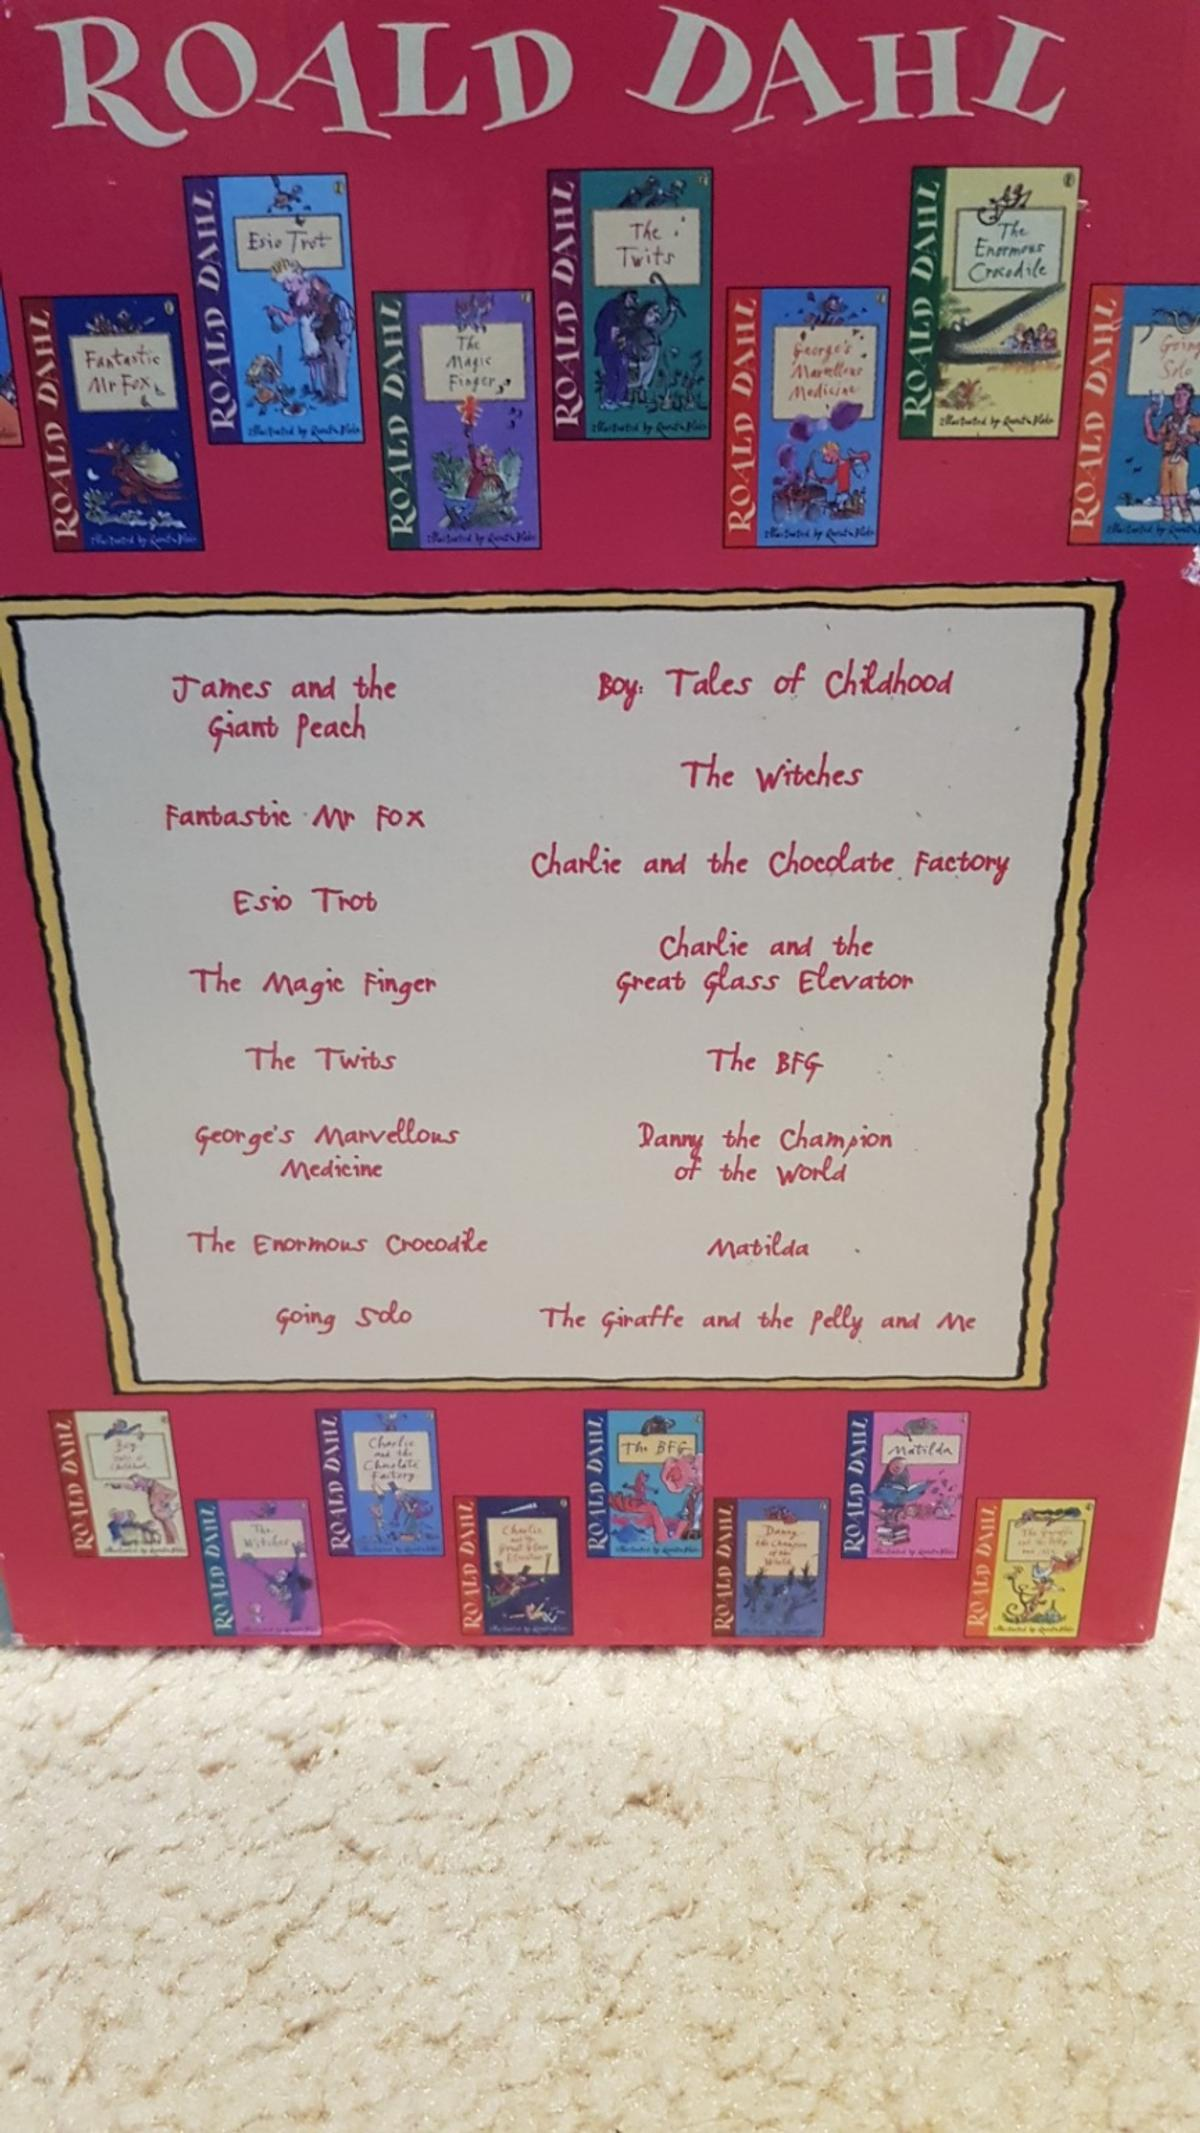 16 books from Roald Dahl good condition in box set